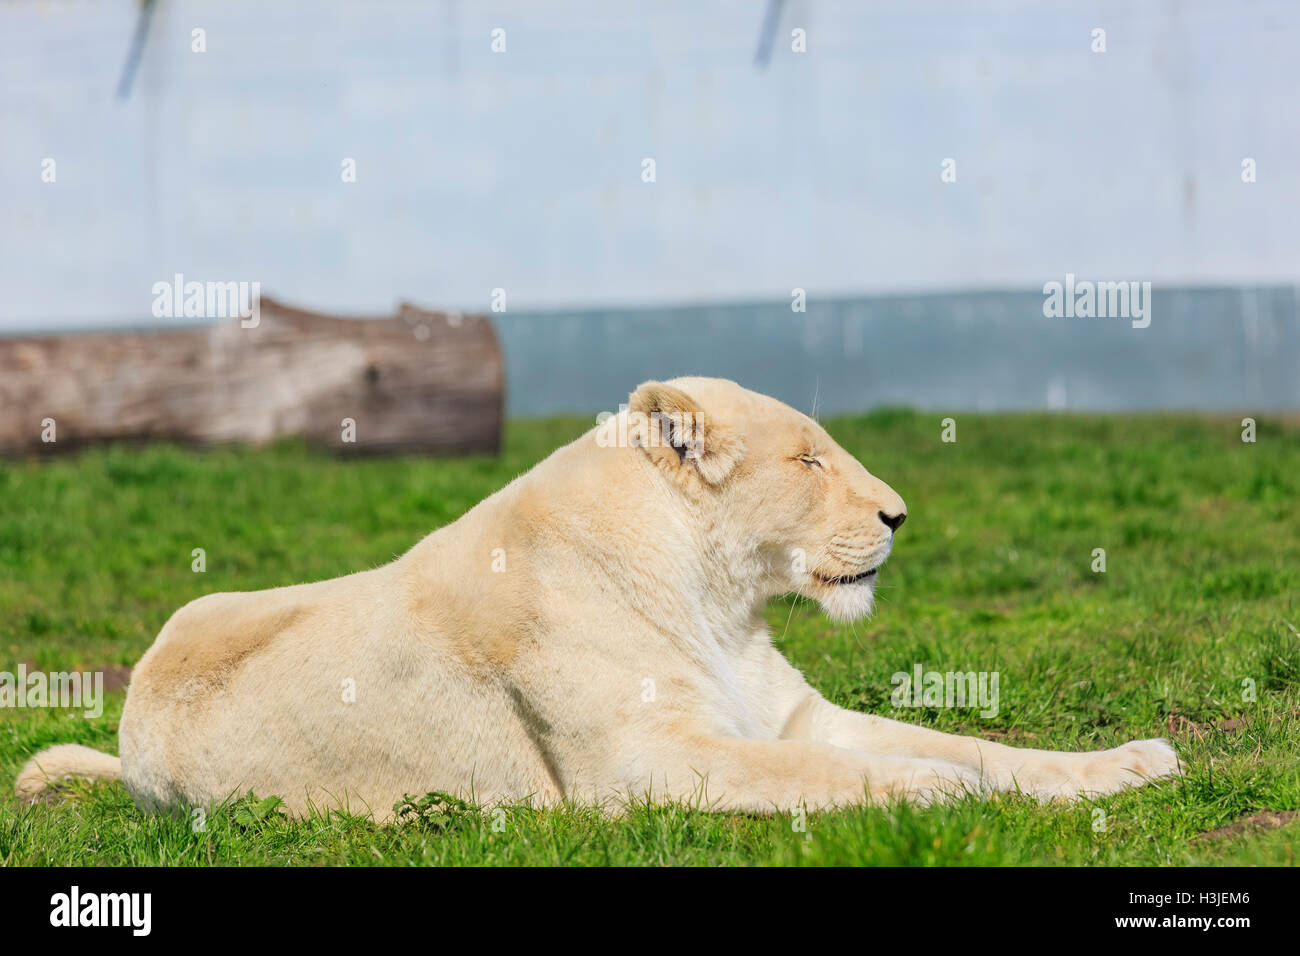 Spring Grove, APR 23: White Bengal Tiger in the beautiful West Midland Safari Park on APR 23, 2016 at Spring Grove, - Stock Image